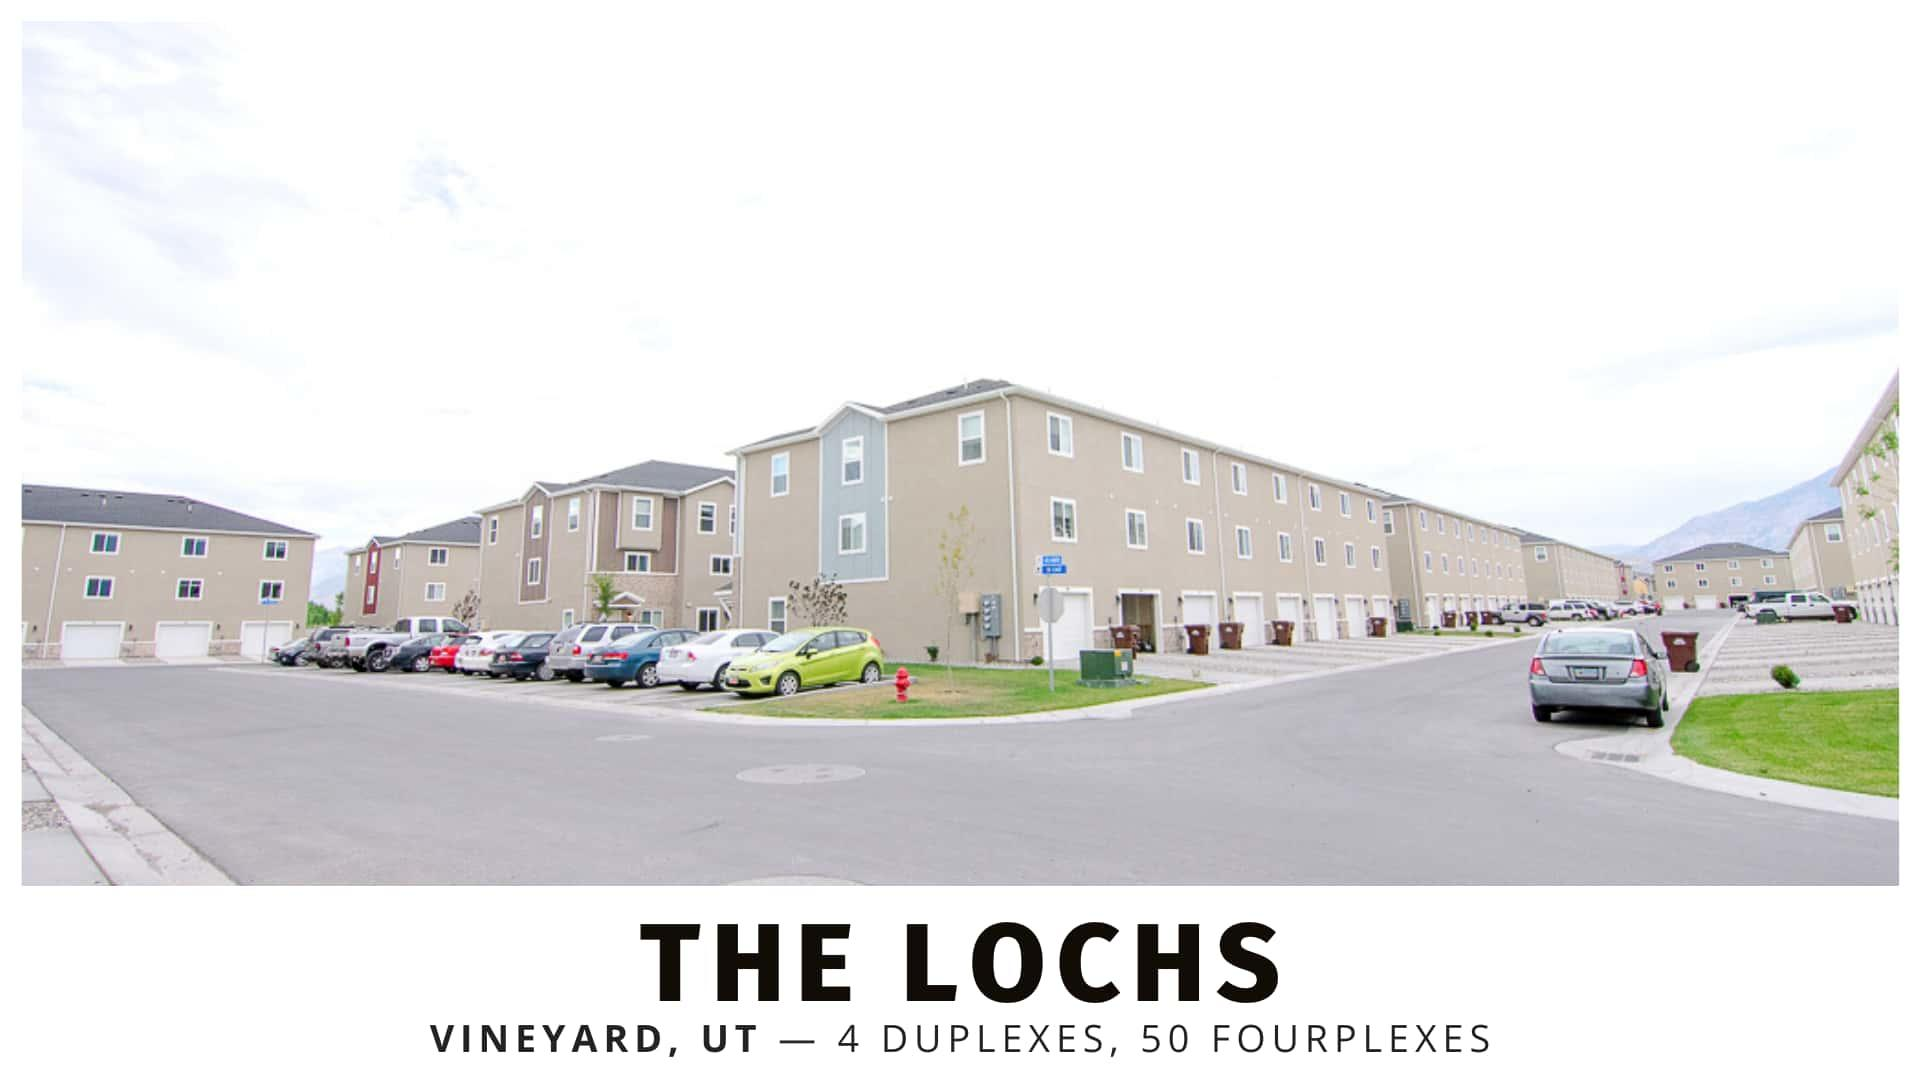 The Lochs Duplexes and Fourplexes in Vineyard, Utah